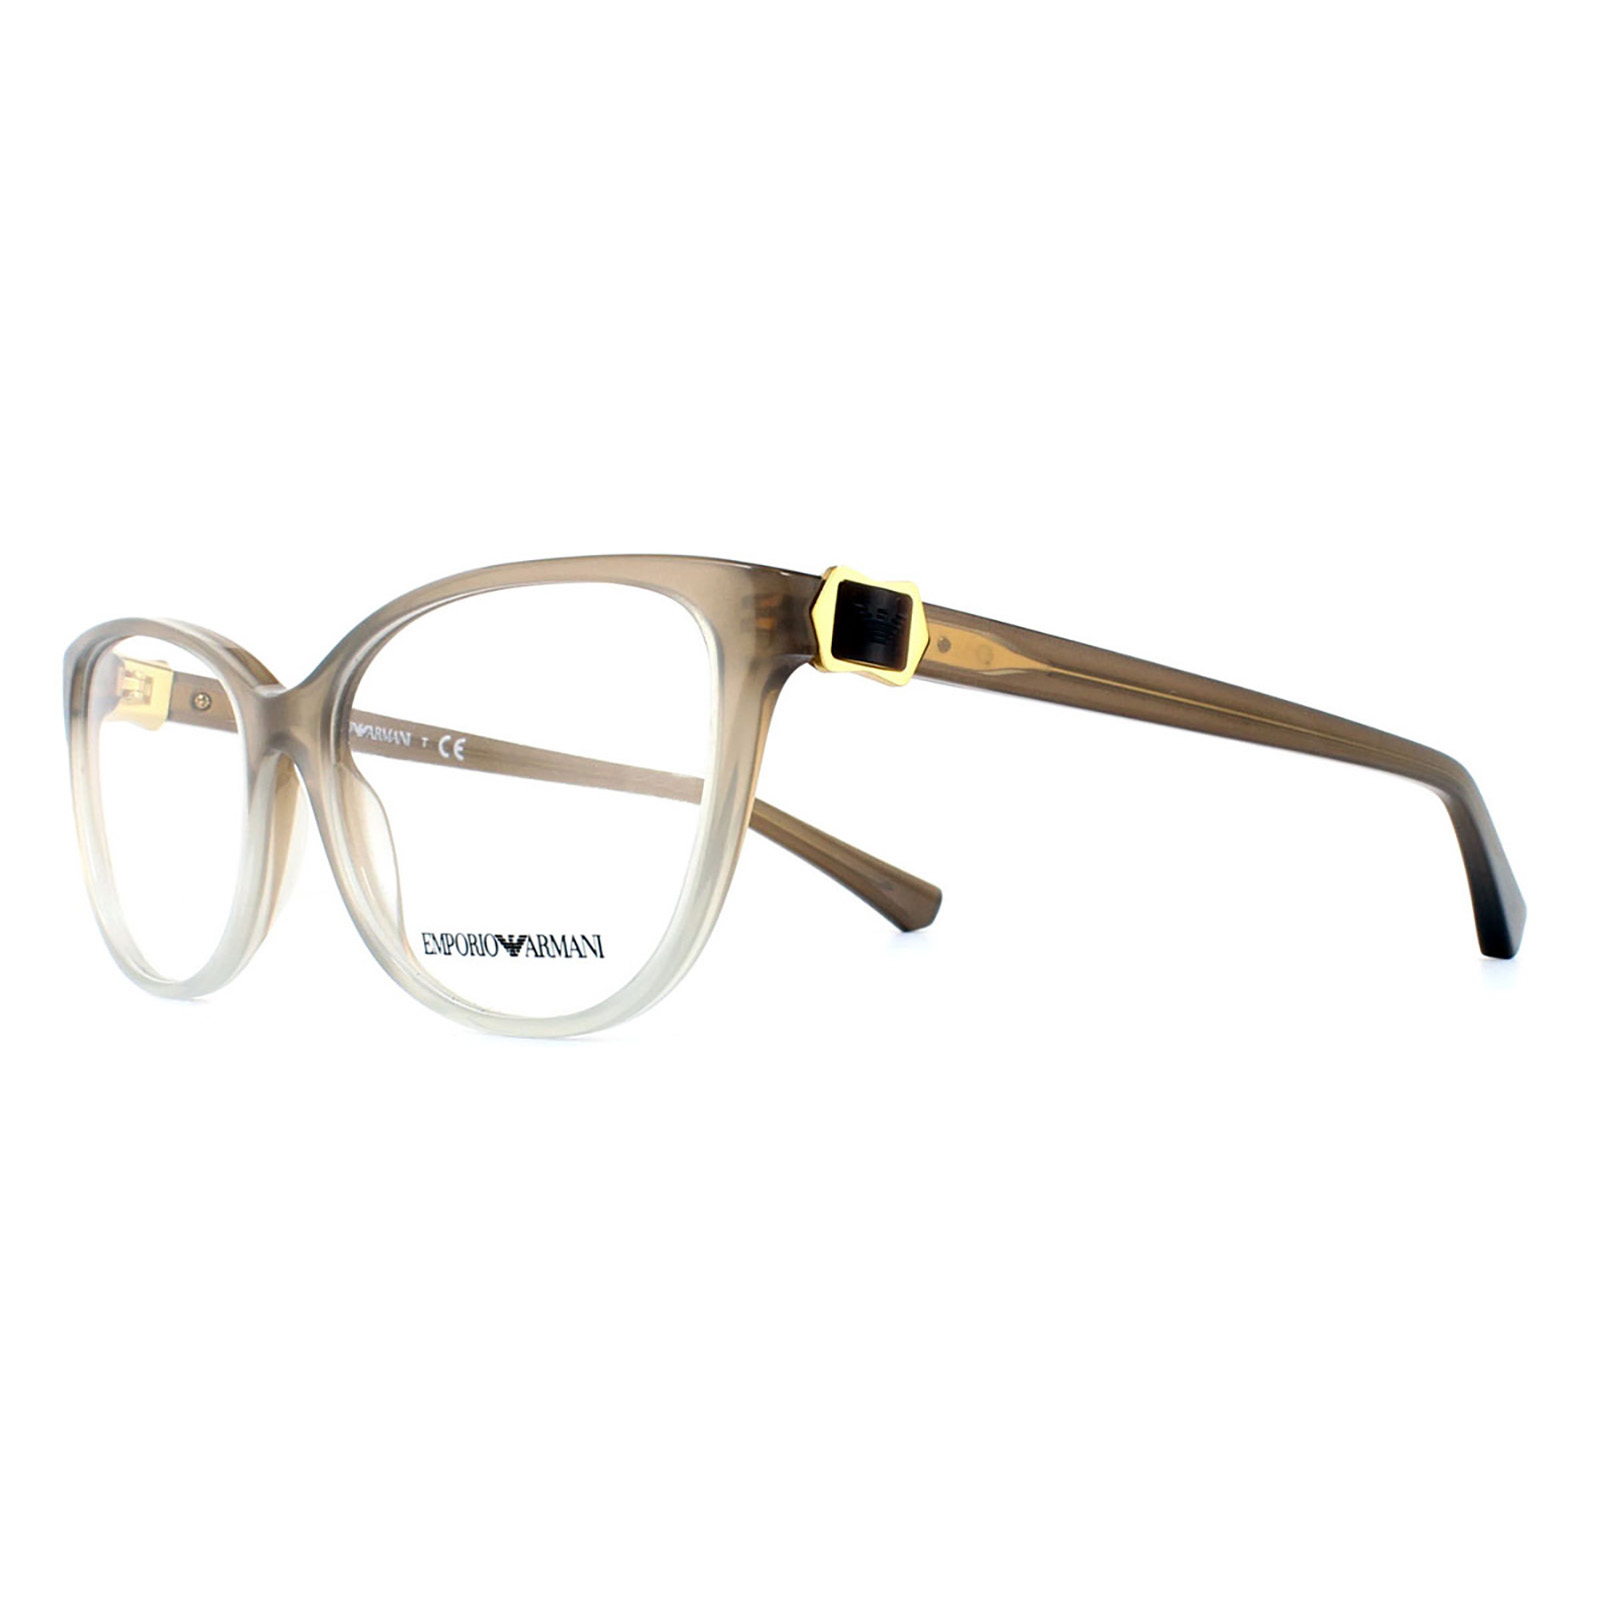 Emporio Armani Glasses Frames 3077 5458 Brown to Crystal Womens 52mm ...